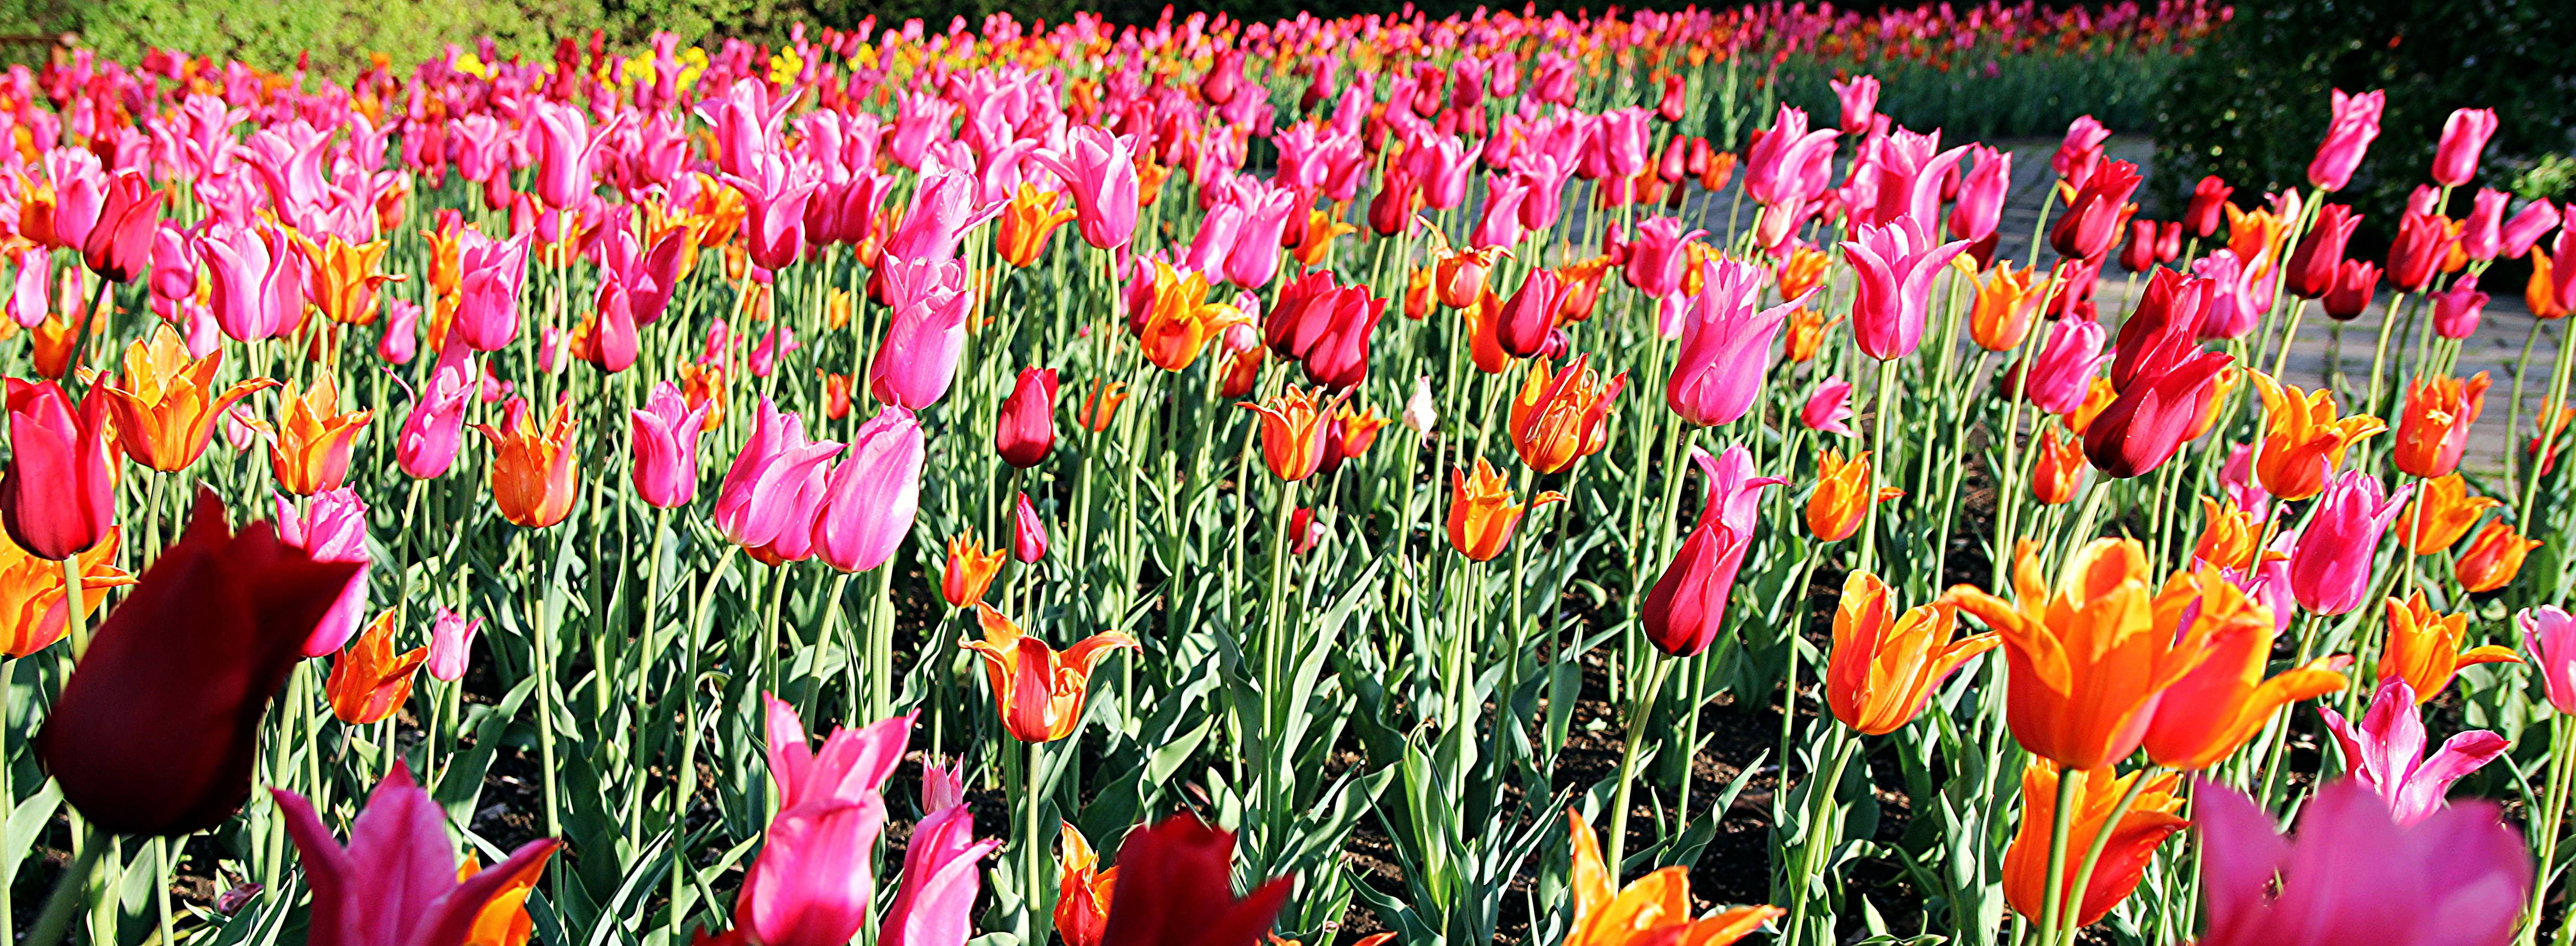 This photo was taken at Cantigny in Wheaton, Illinois.  It's late afternoon and the sun is really magnifying the colors of the 1,000's of tulips. Crouching down is necessary to get an interesting foreground while still capturing the endless sea of colors. It also helps to crop and frame the photo to emphasize the area in focus, as well as what's not.